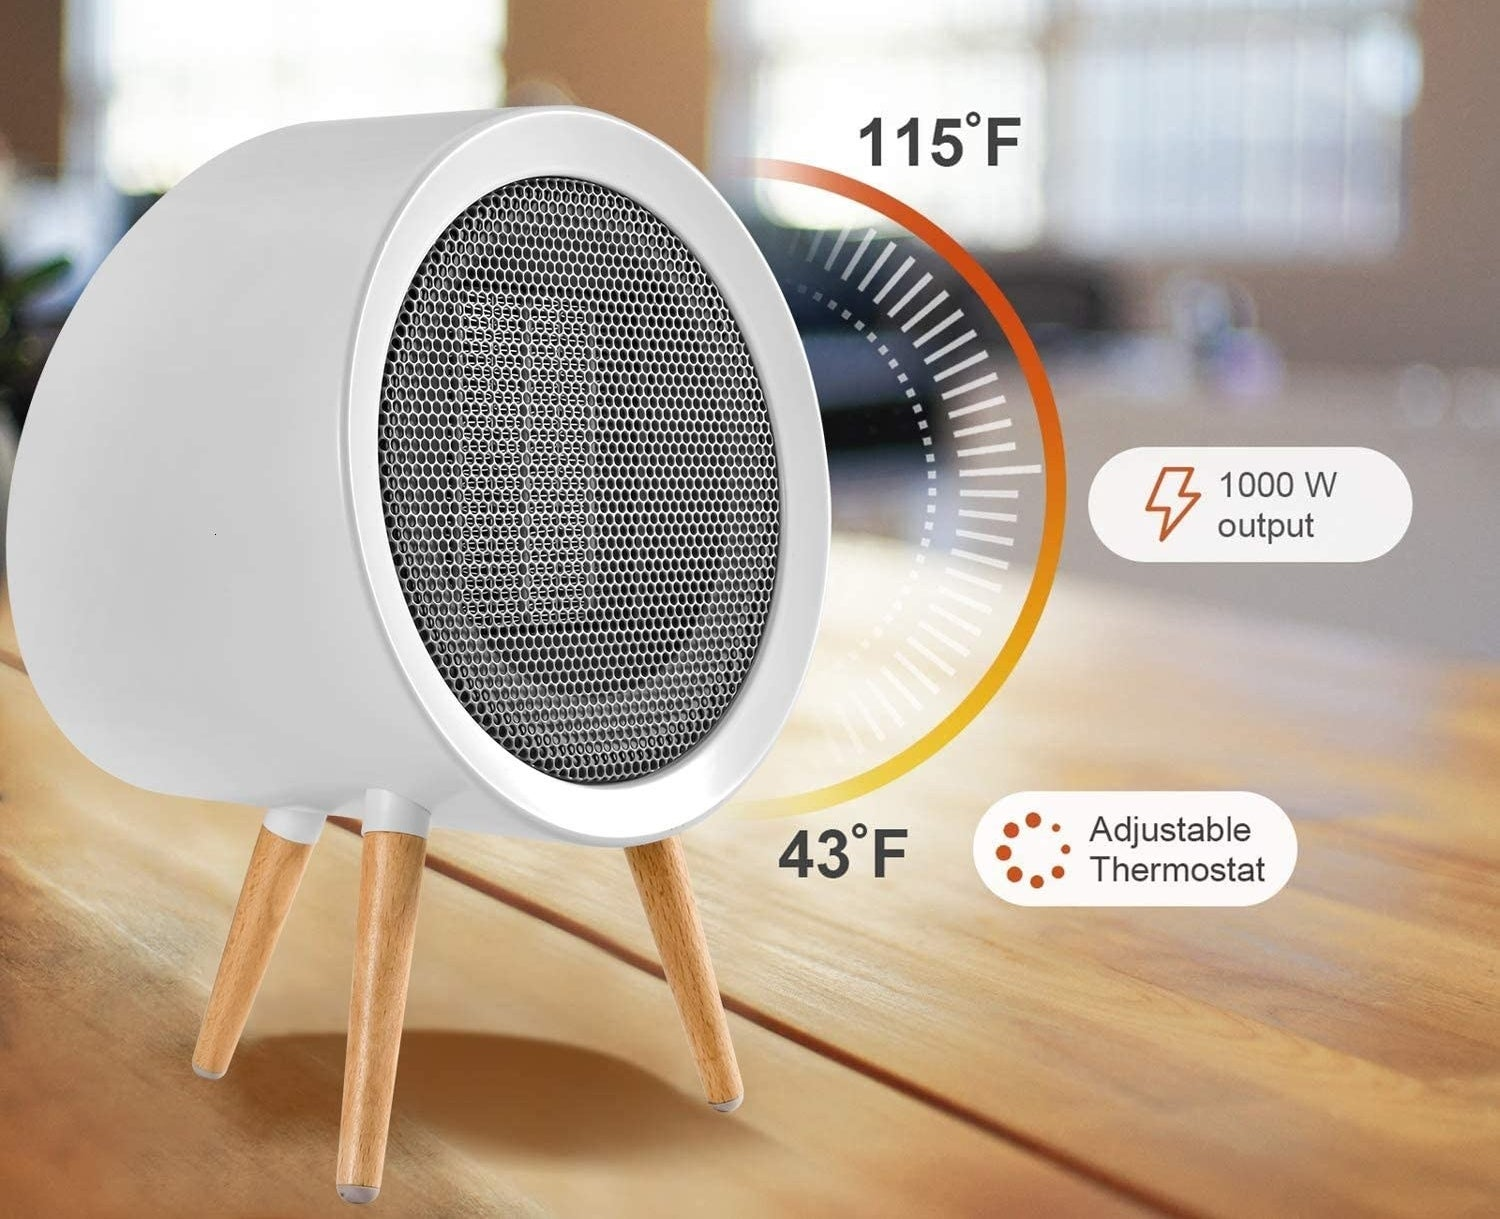 The space heater with a graphic showing the adjustable thermostat